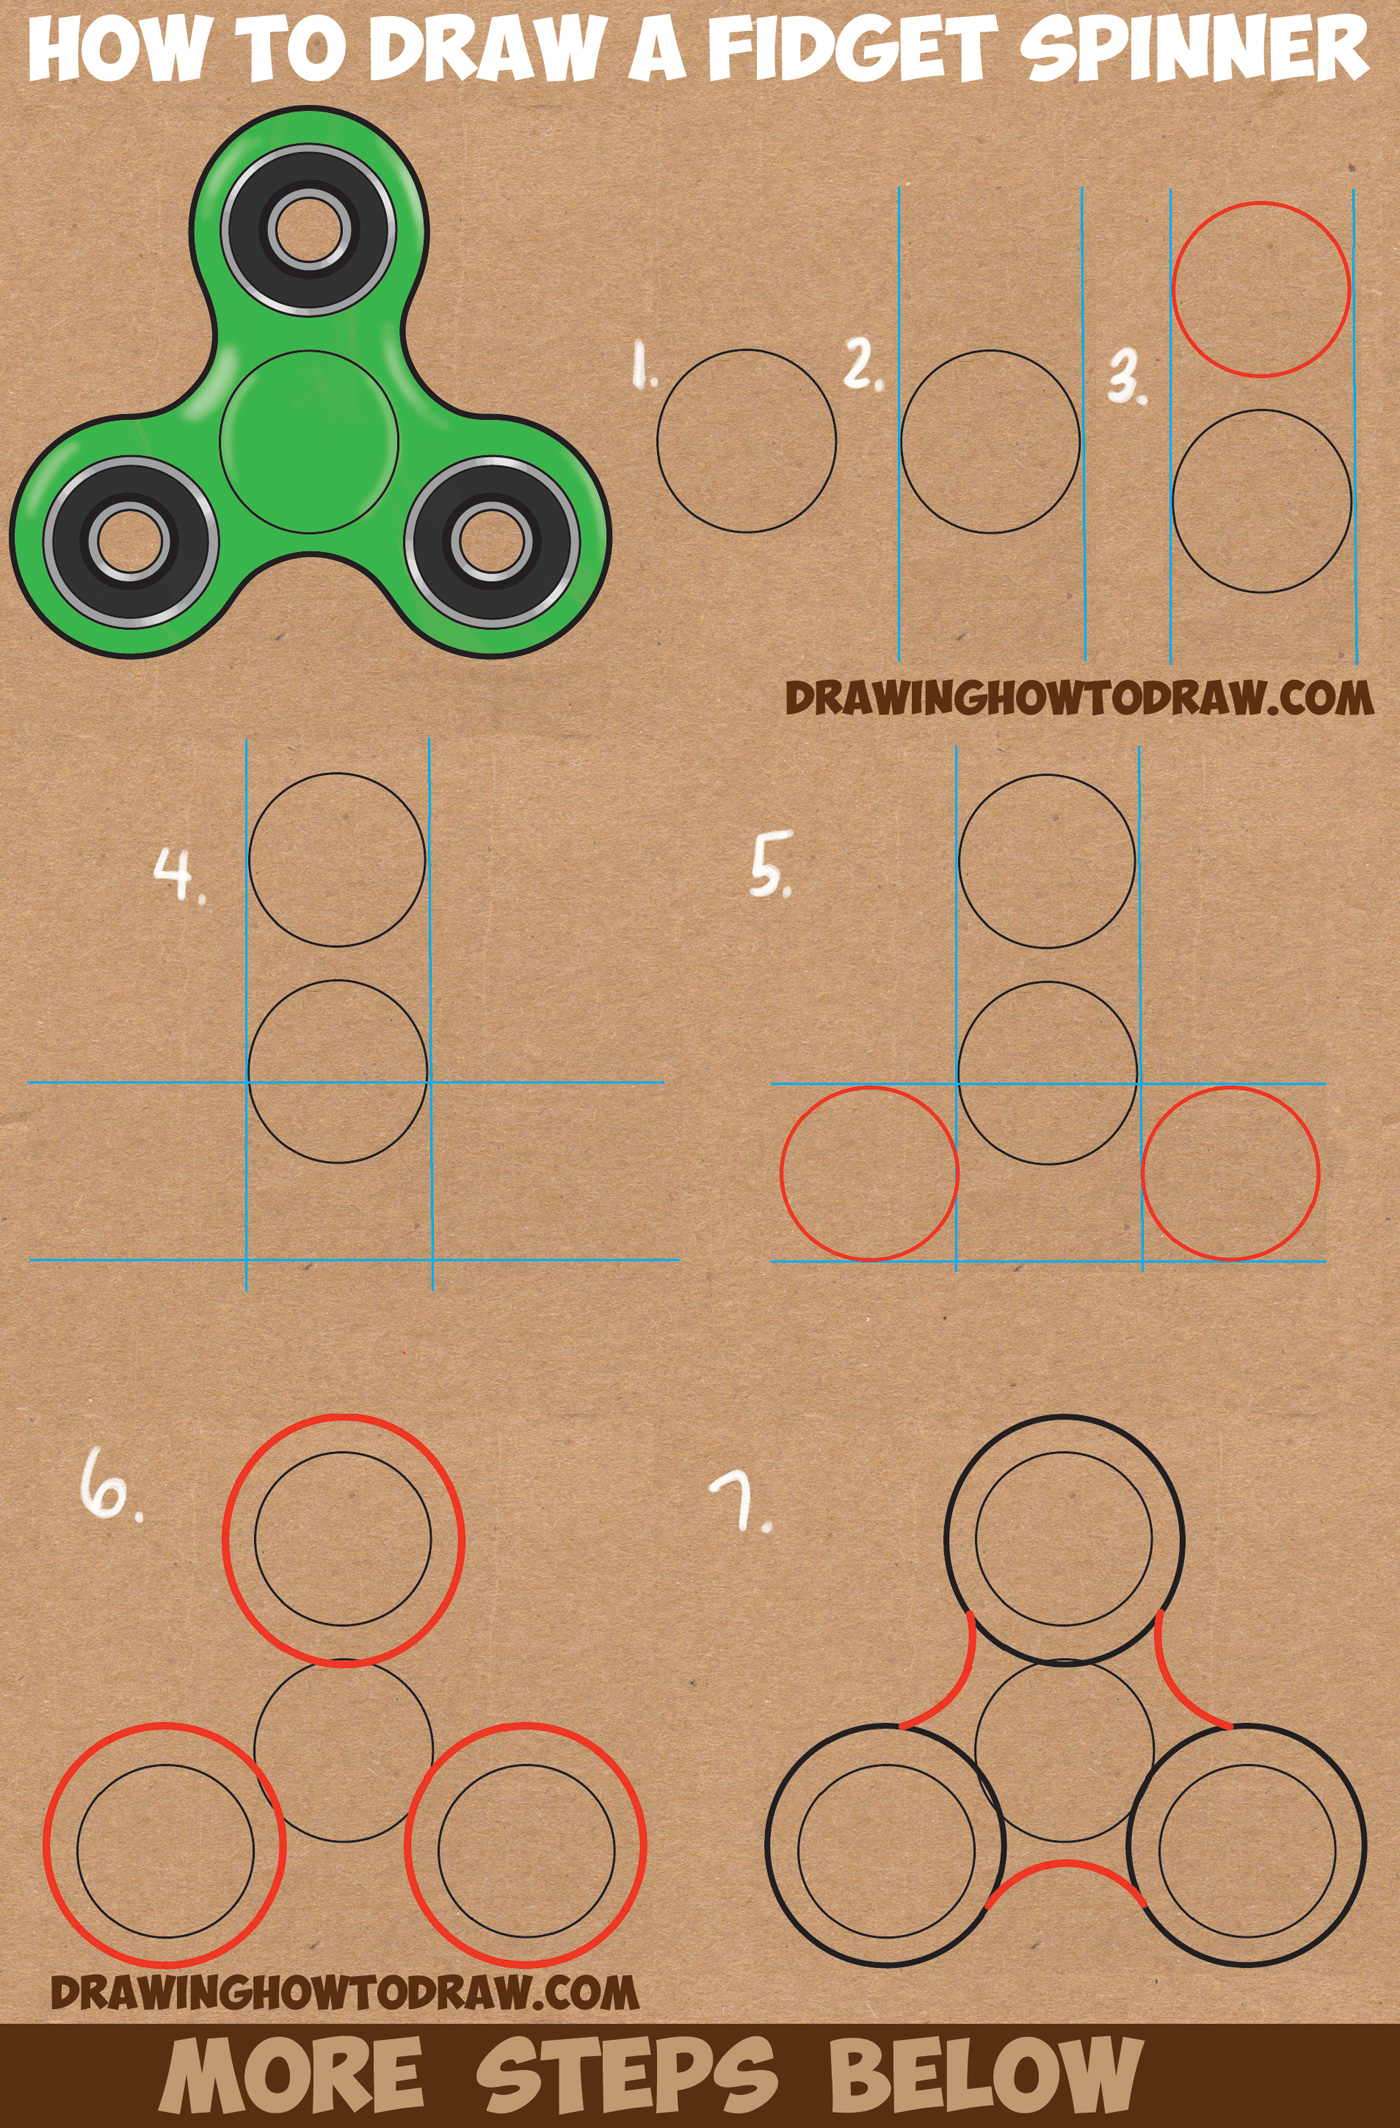 how to draw a fidget spinner easy step by step drawing